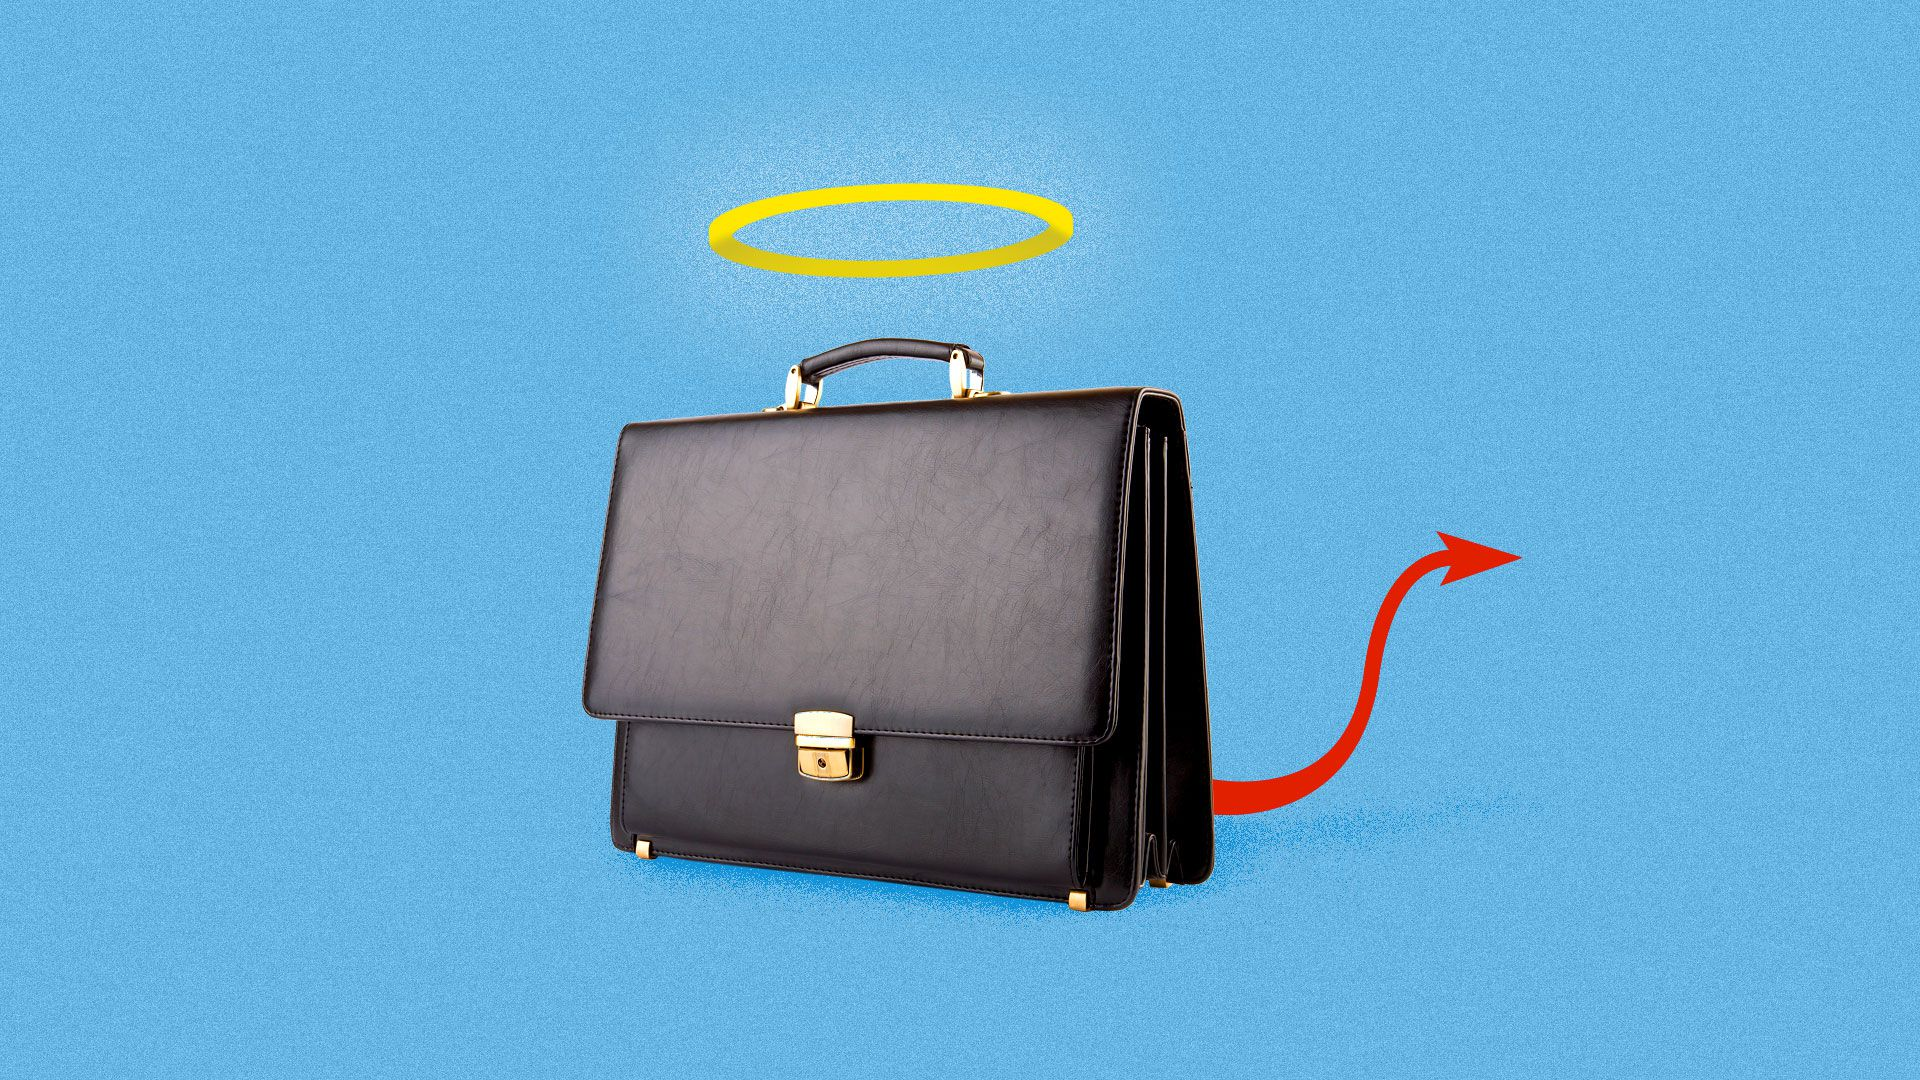 An illustration of an evil briefcase with a halo.